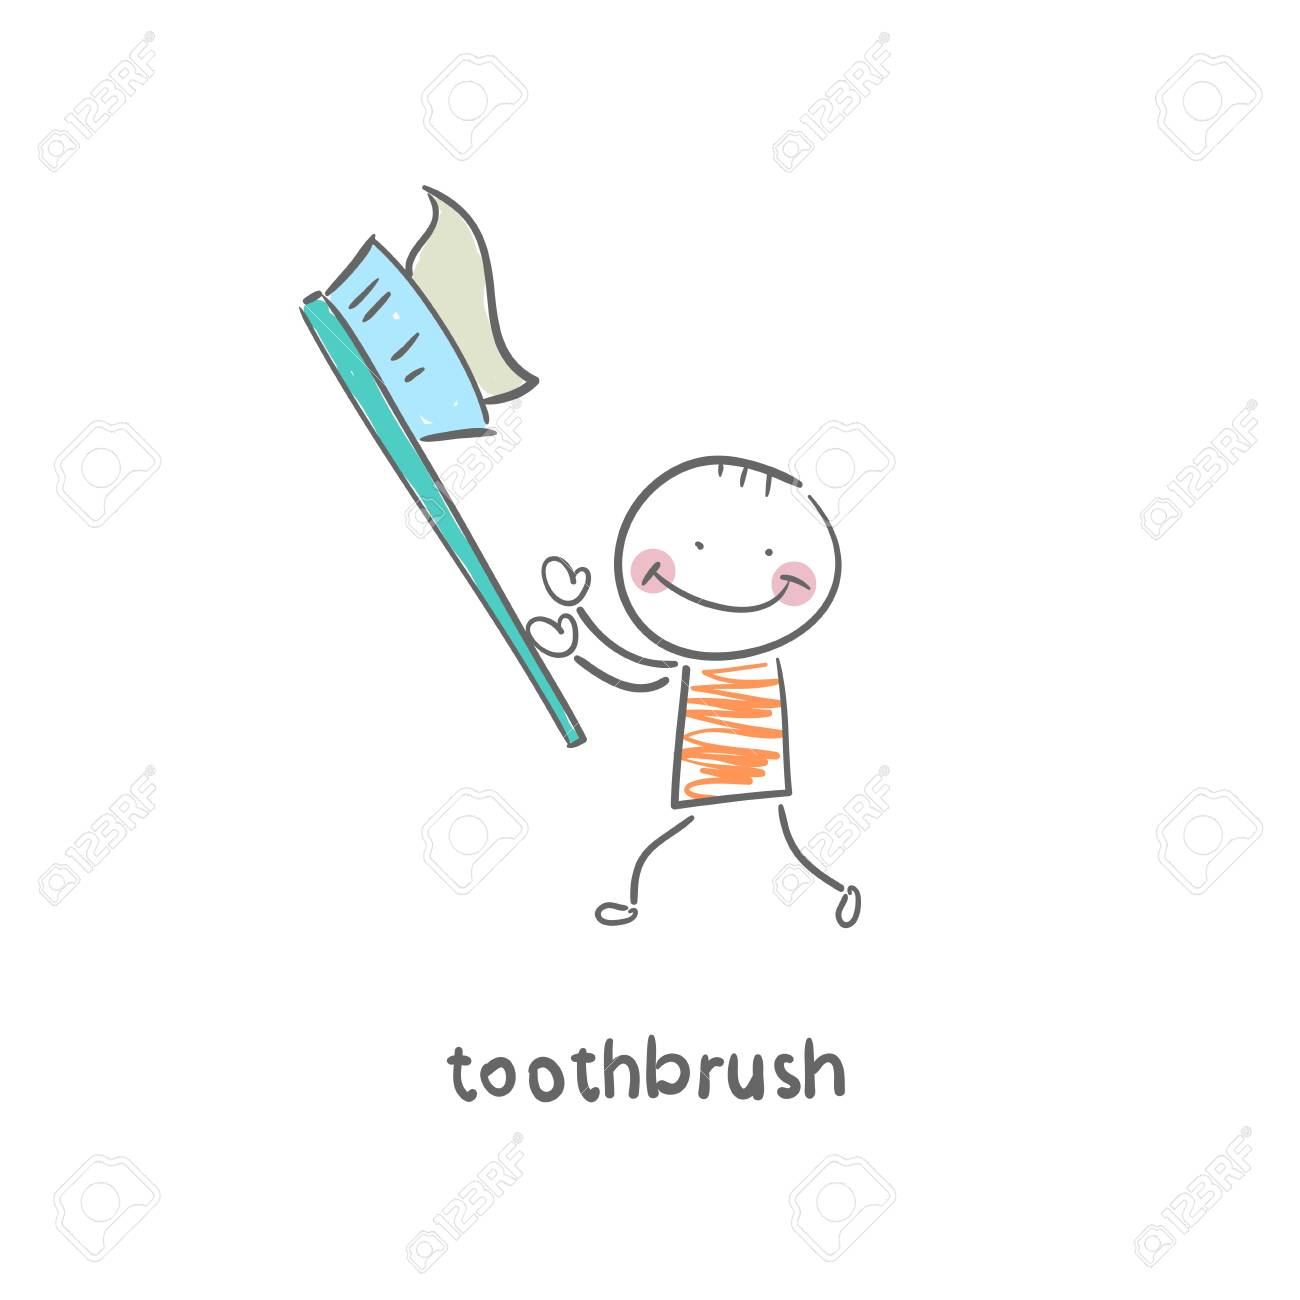 toothbrush Stock Vector - 18953236